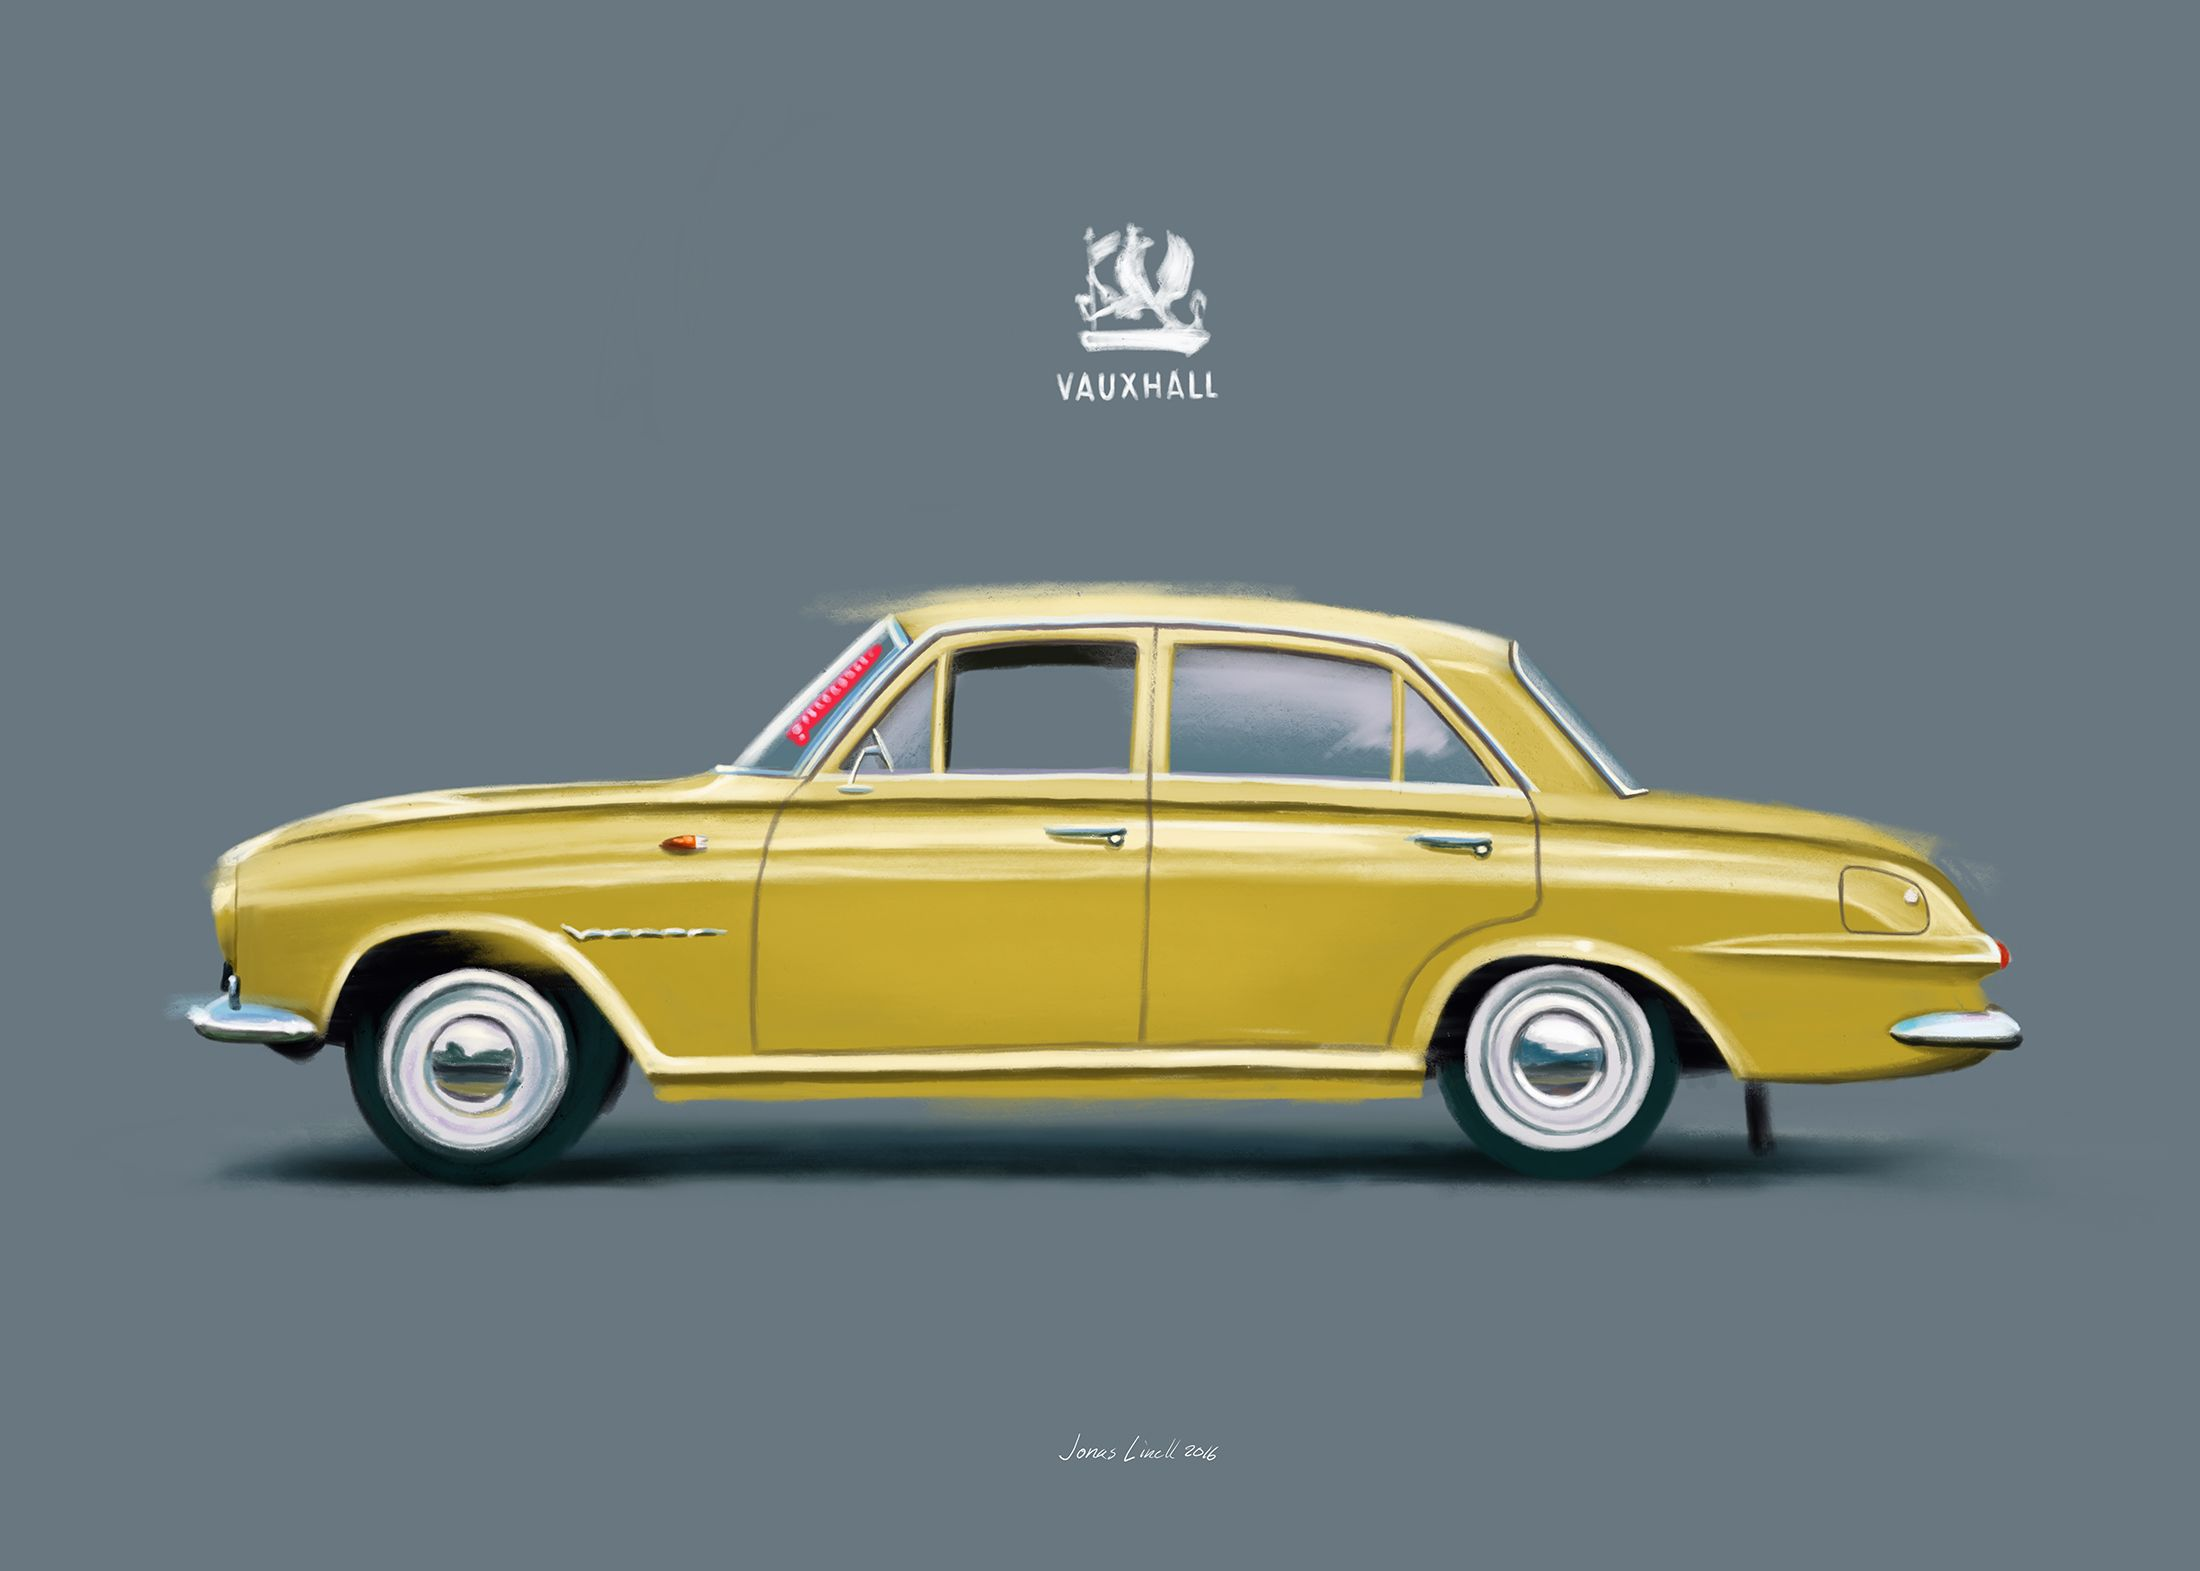 A Vauxhall Victor painted for a Danish client. By Jonas Linell 2016. ‪#‎carart‬ ‪#‎classiccars‬ ‪#‎vauxhall‬ ‪#‎victor‬ ‪#‎vintage‬ ‪#‎cars‬ ‪#‎car‬ ‪#‎illustration‬ ‪#‎classic‬ ‪#‎british‬ ‪#‎UK‬ ‪#‎GB‬ ‪#‎art‬ ‪#‎posters‬ ‪#‎painting‬ ‪#‎artwork‬